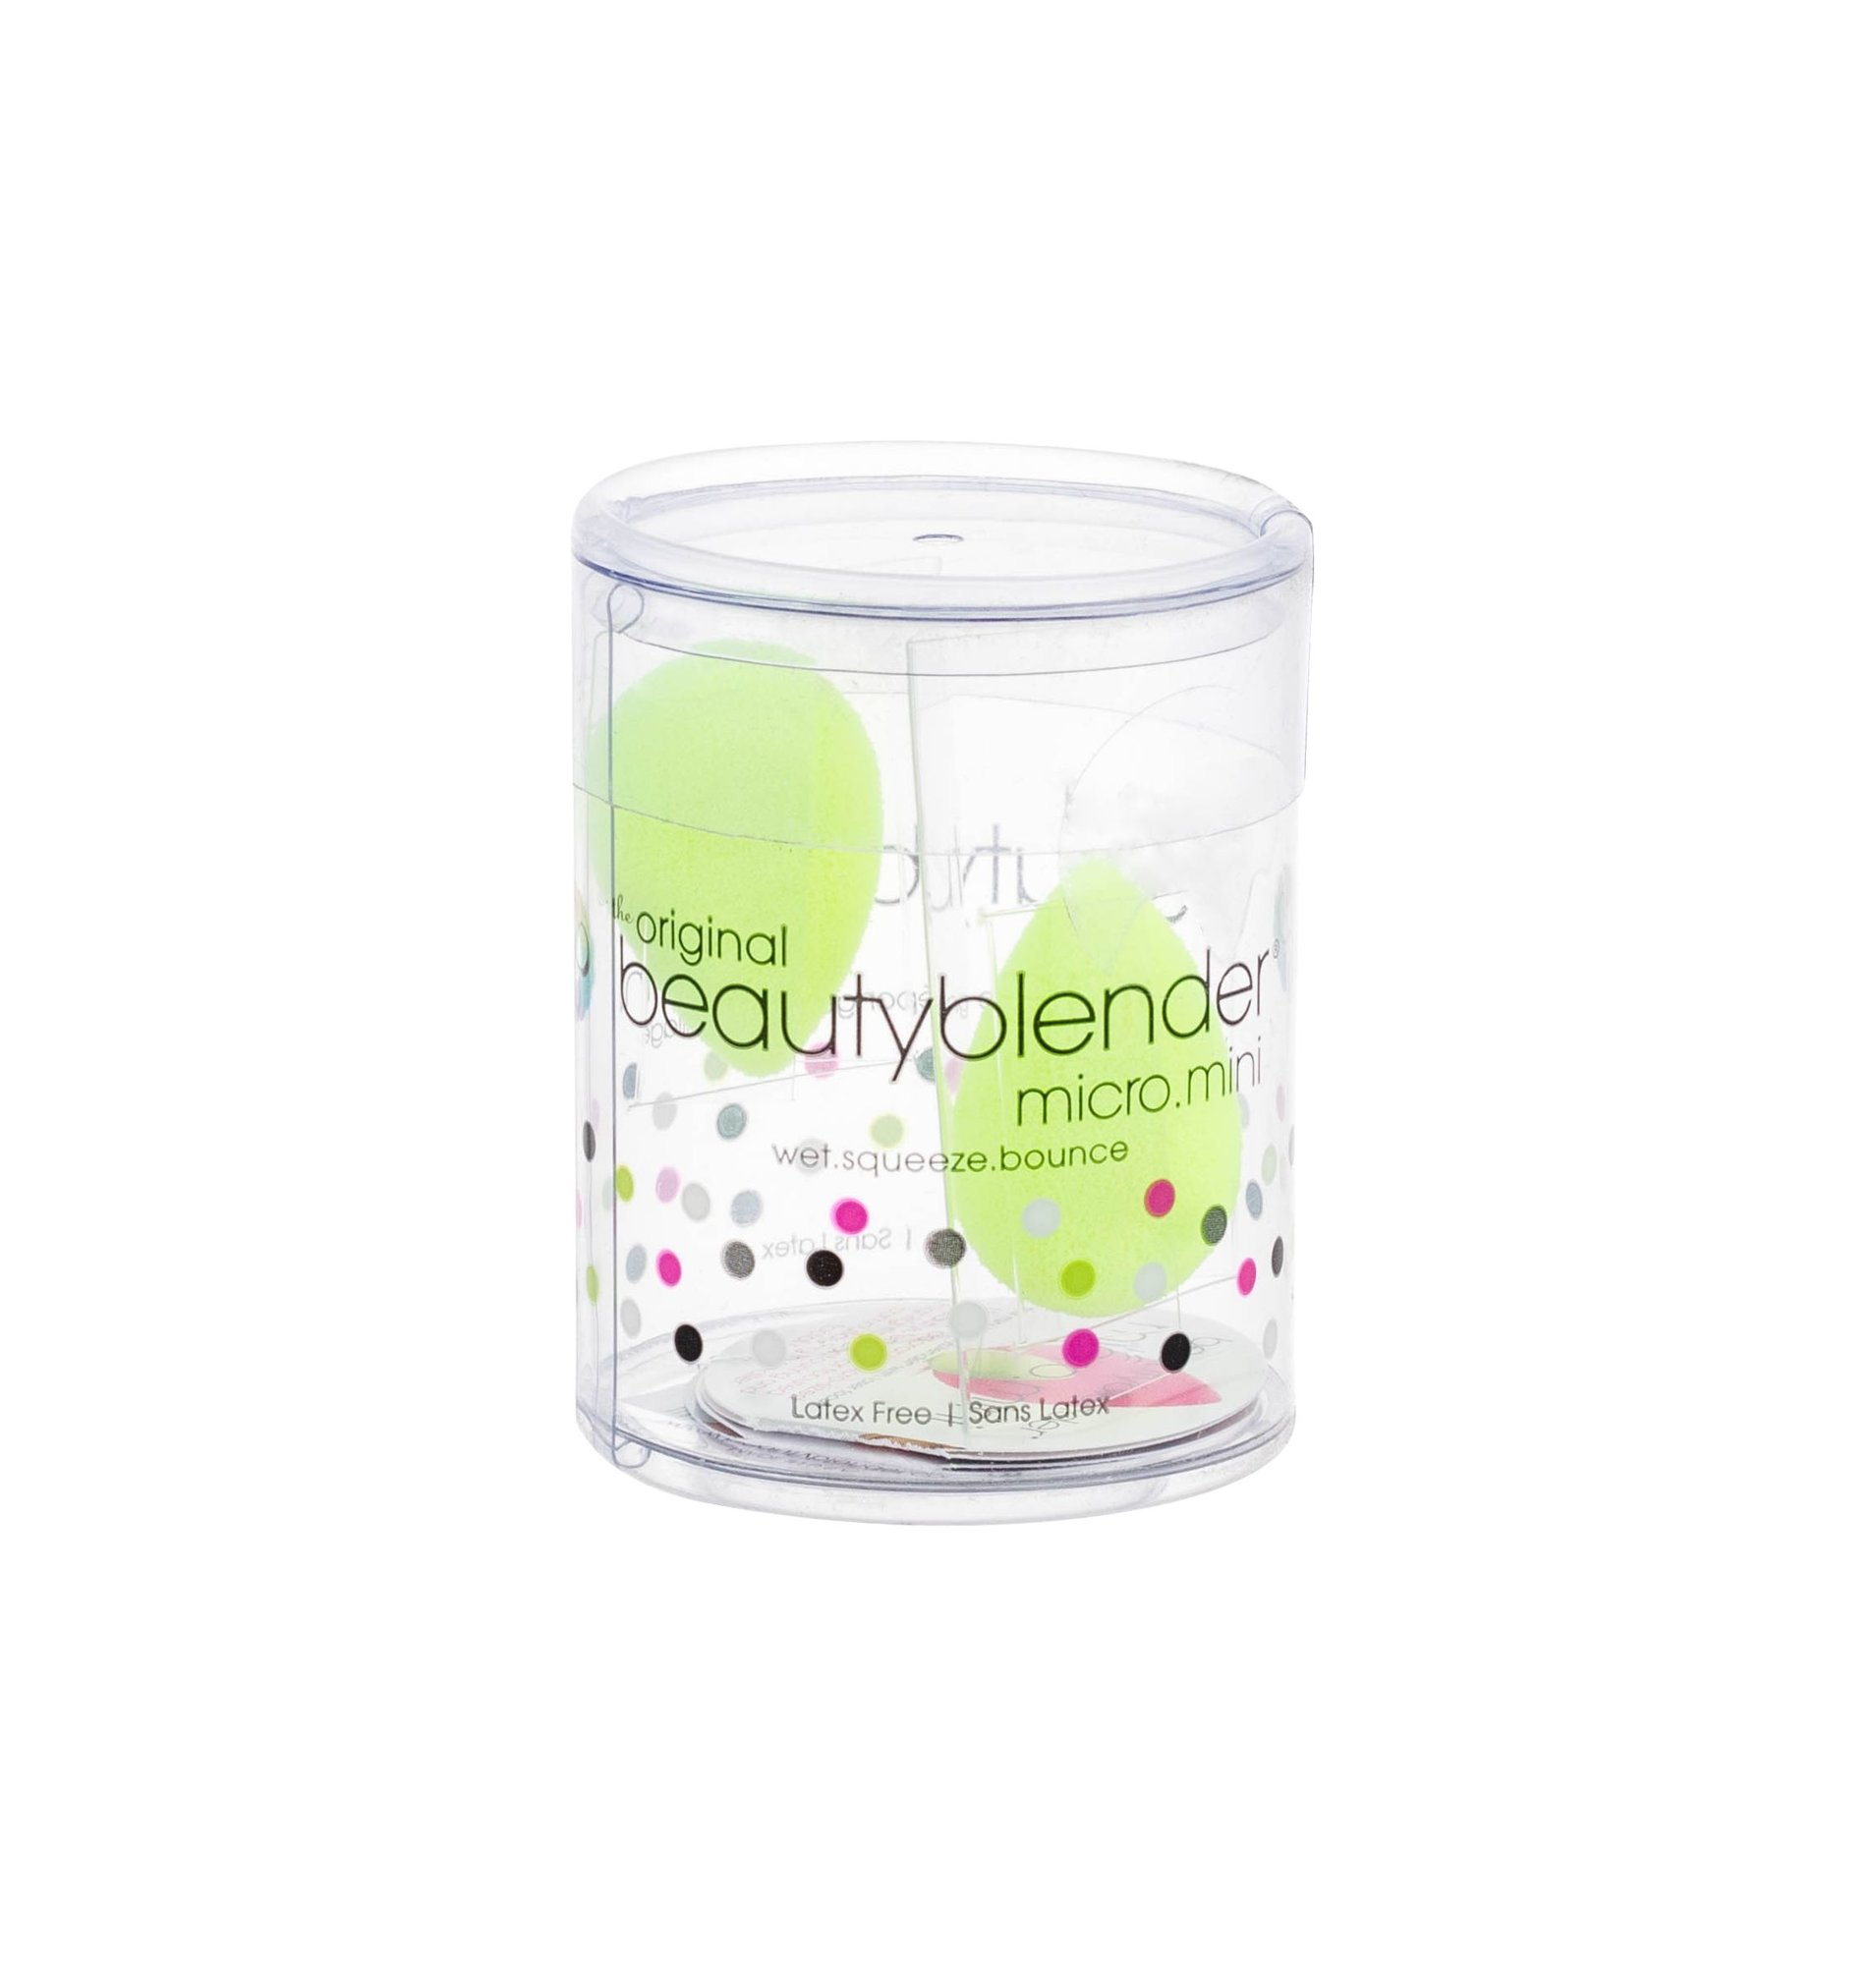 beautyblender the original Applicator 2ml Green micro.mini